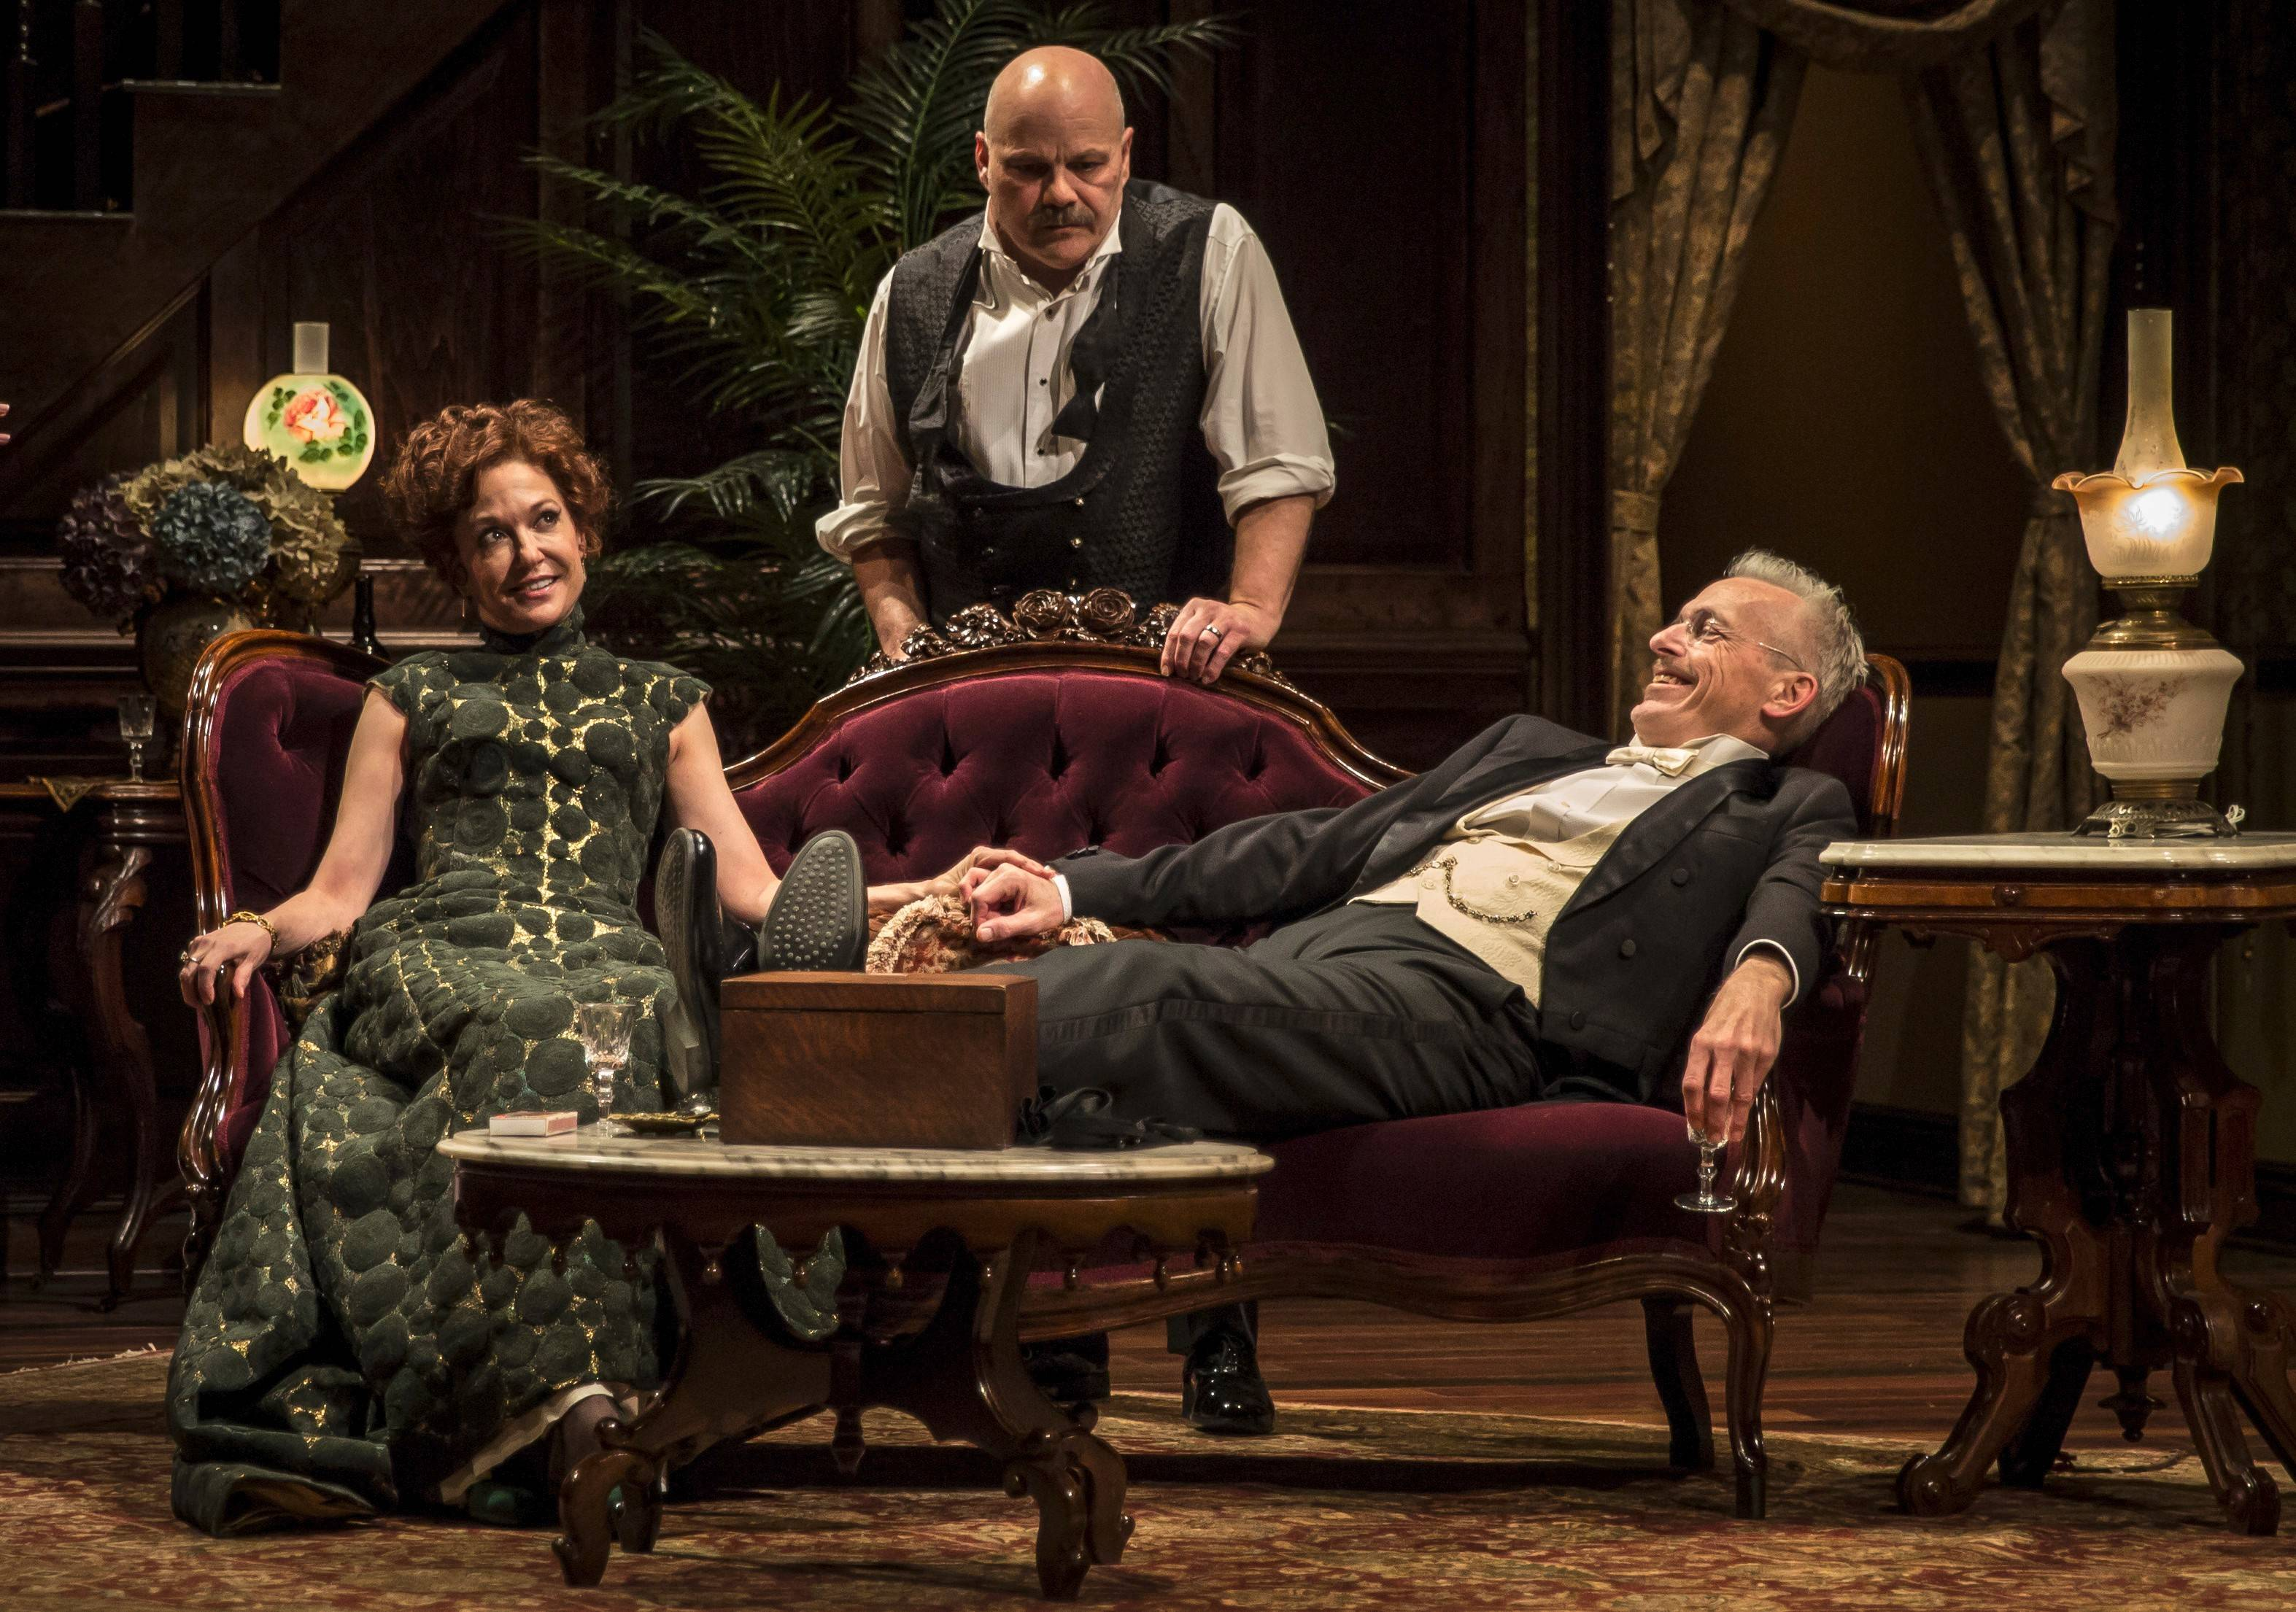 Exceptional cast powers riveting revival of 'The Little Foxes' at Goodman